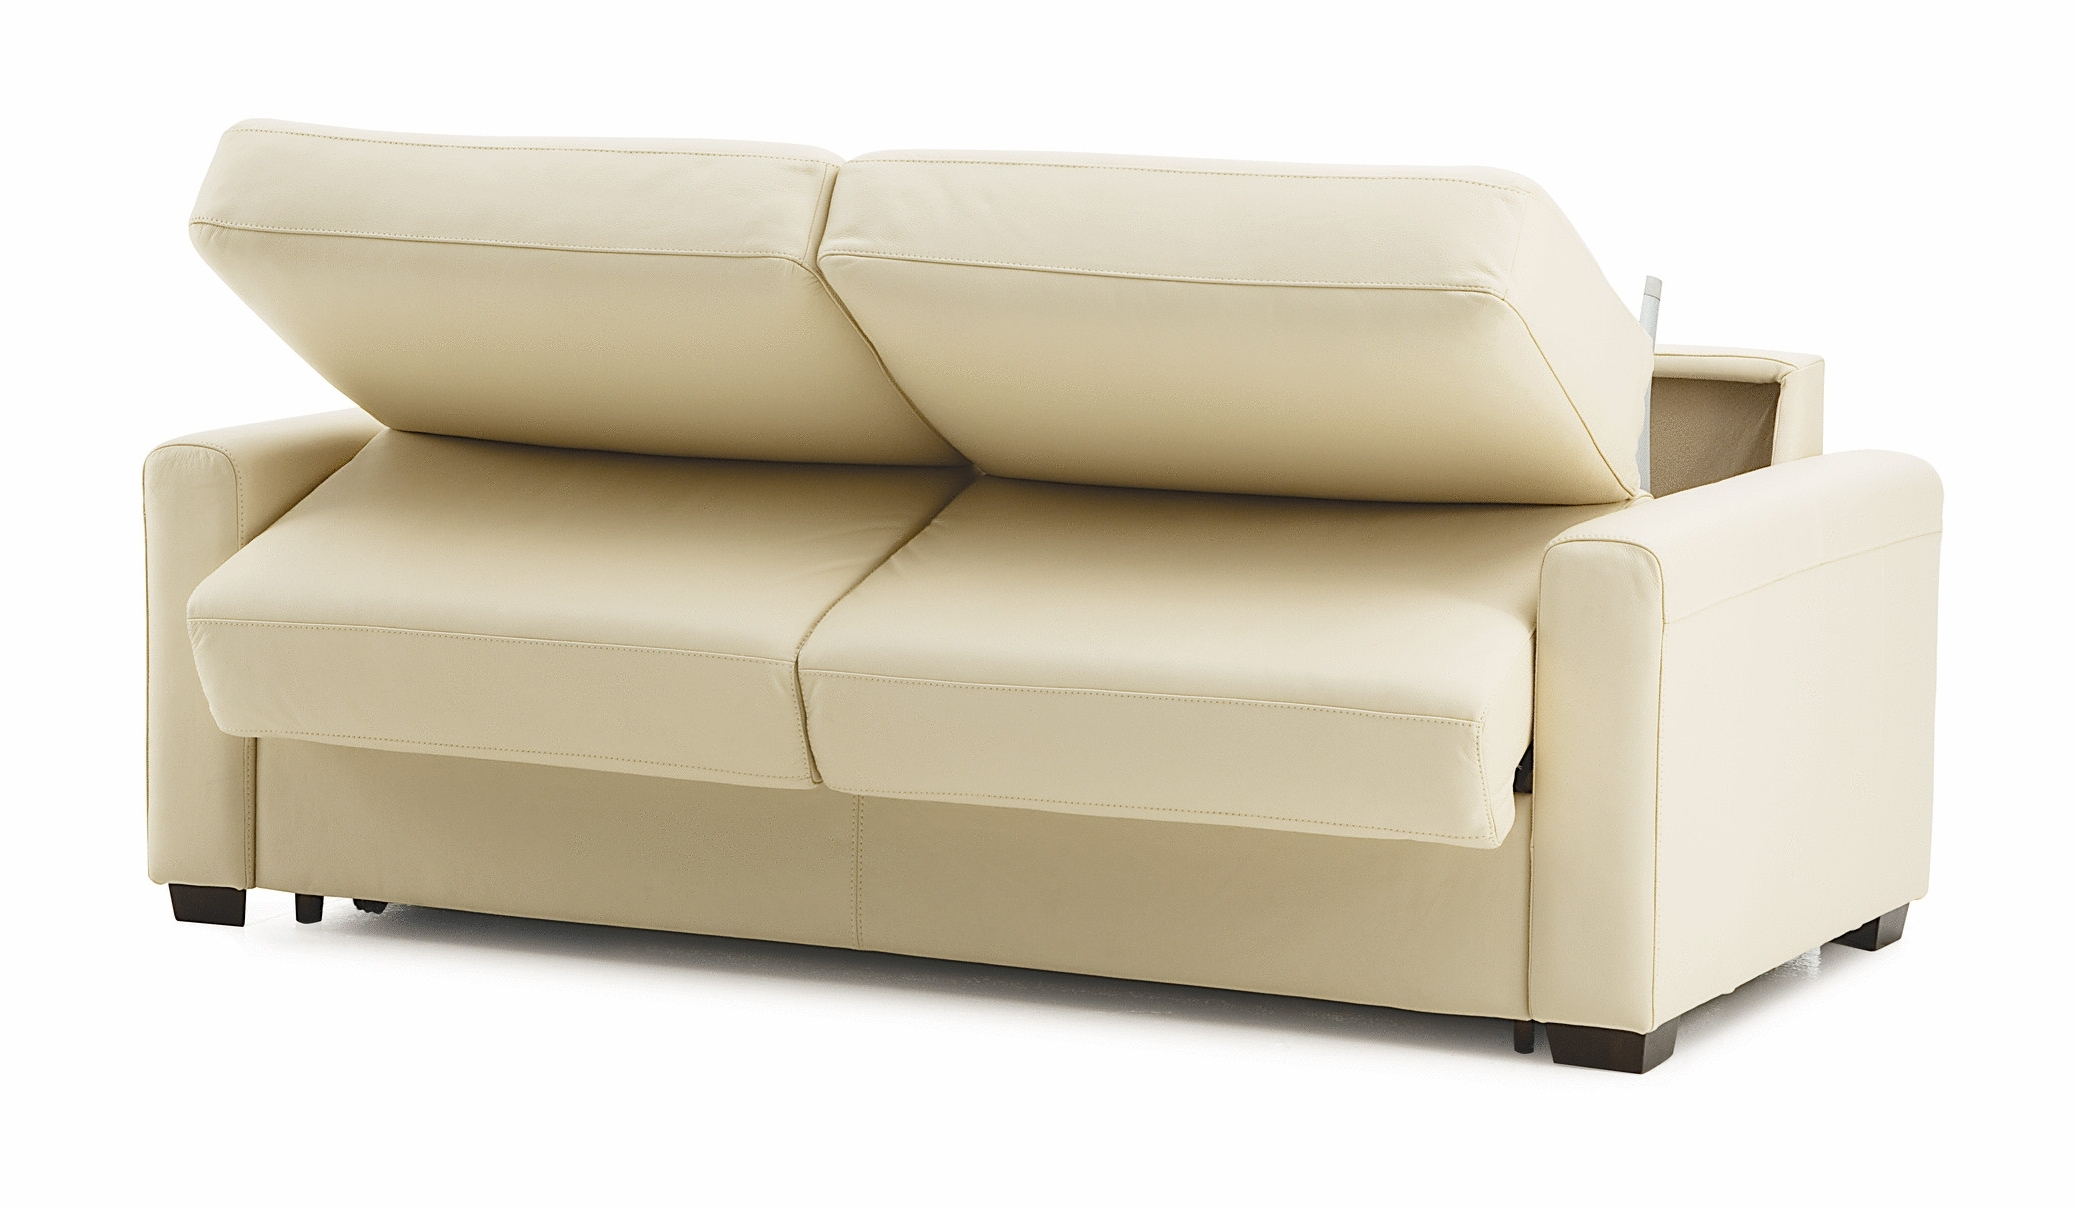 Maximizing Small Spaces Using White Leather Twin Size Sleeper Sofa For Well Known Twin Sleeper Sofa Chairs (View 7 of 20)